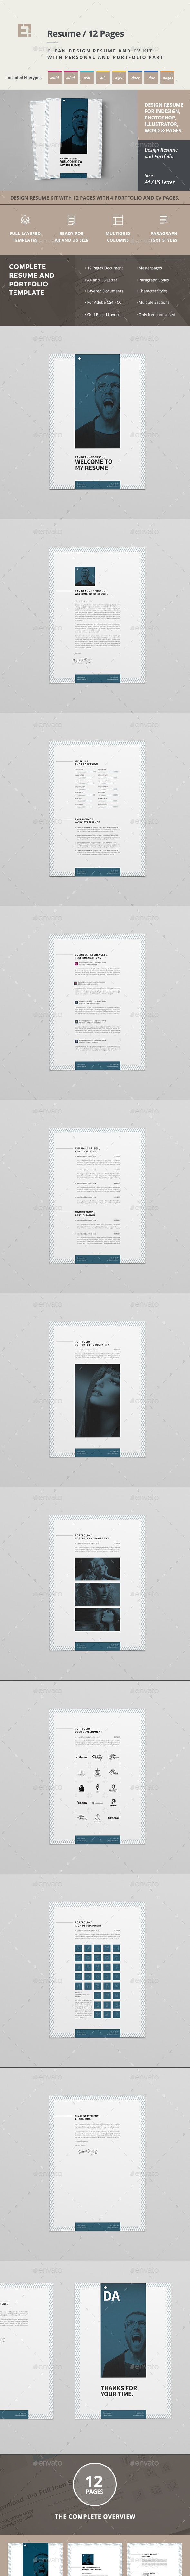 Simple Resume - Resumes Stationery